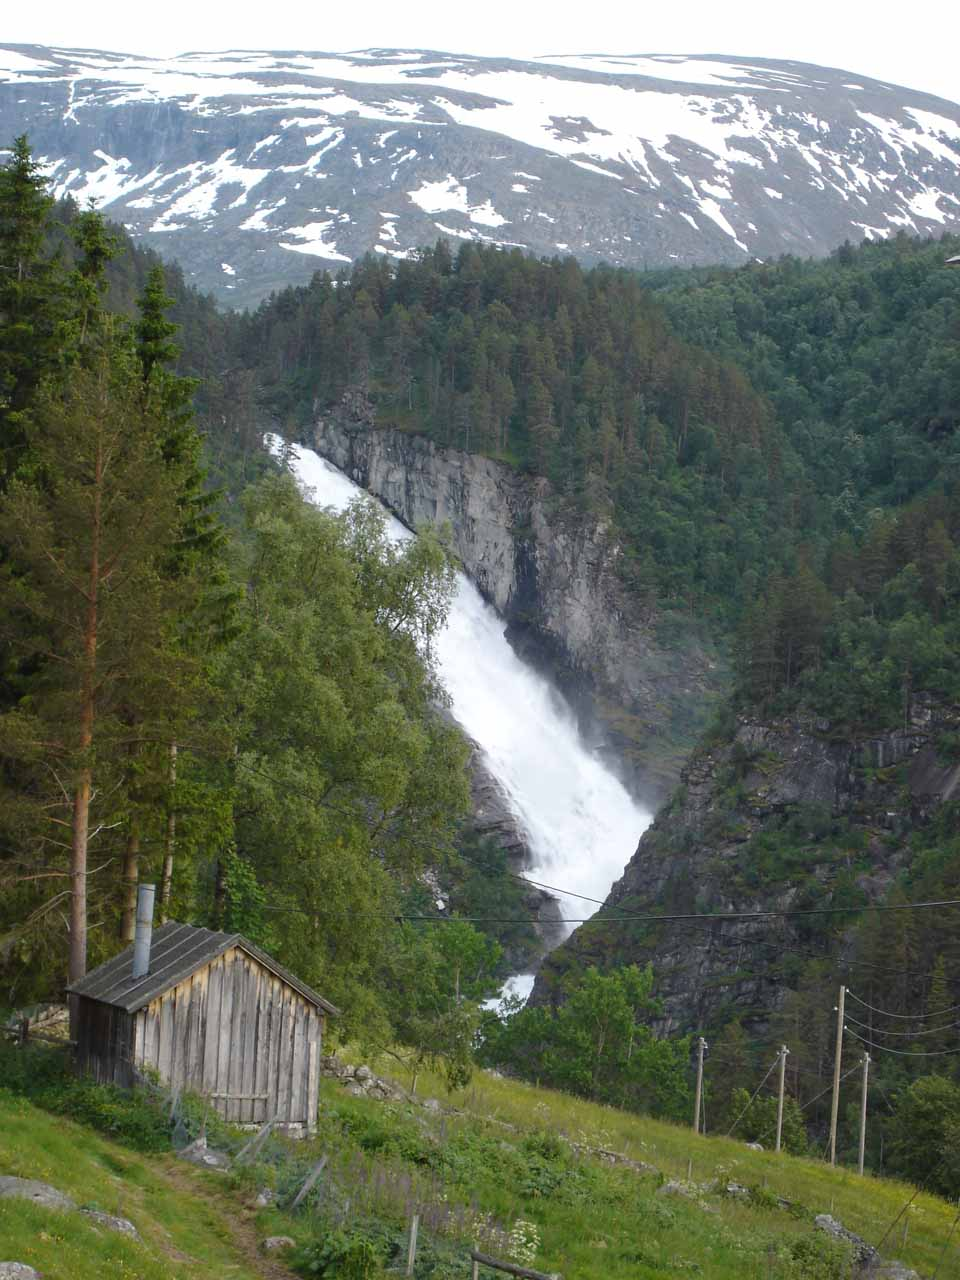 At the second car park where Julie got this view of Reppdalsfossen